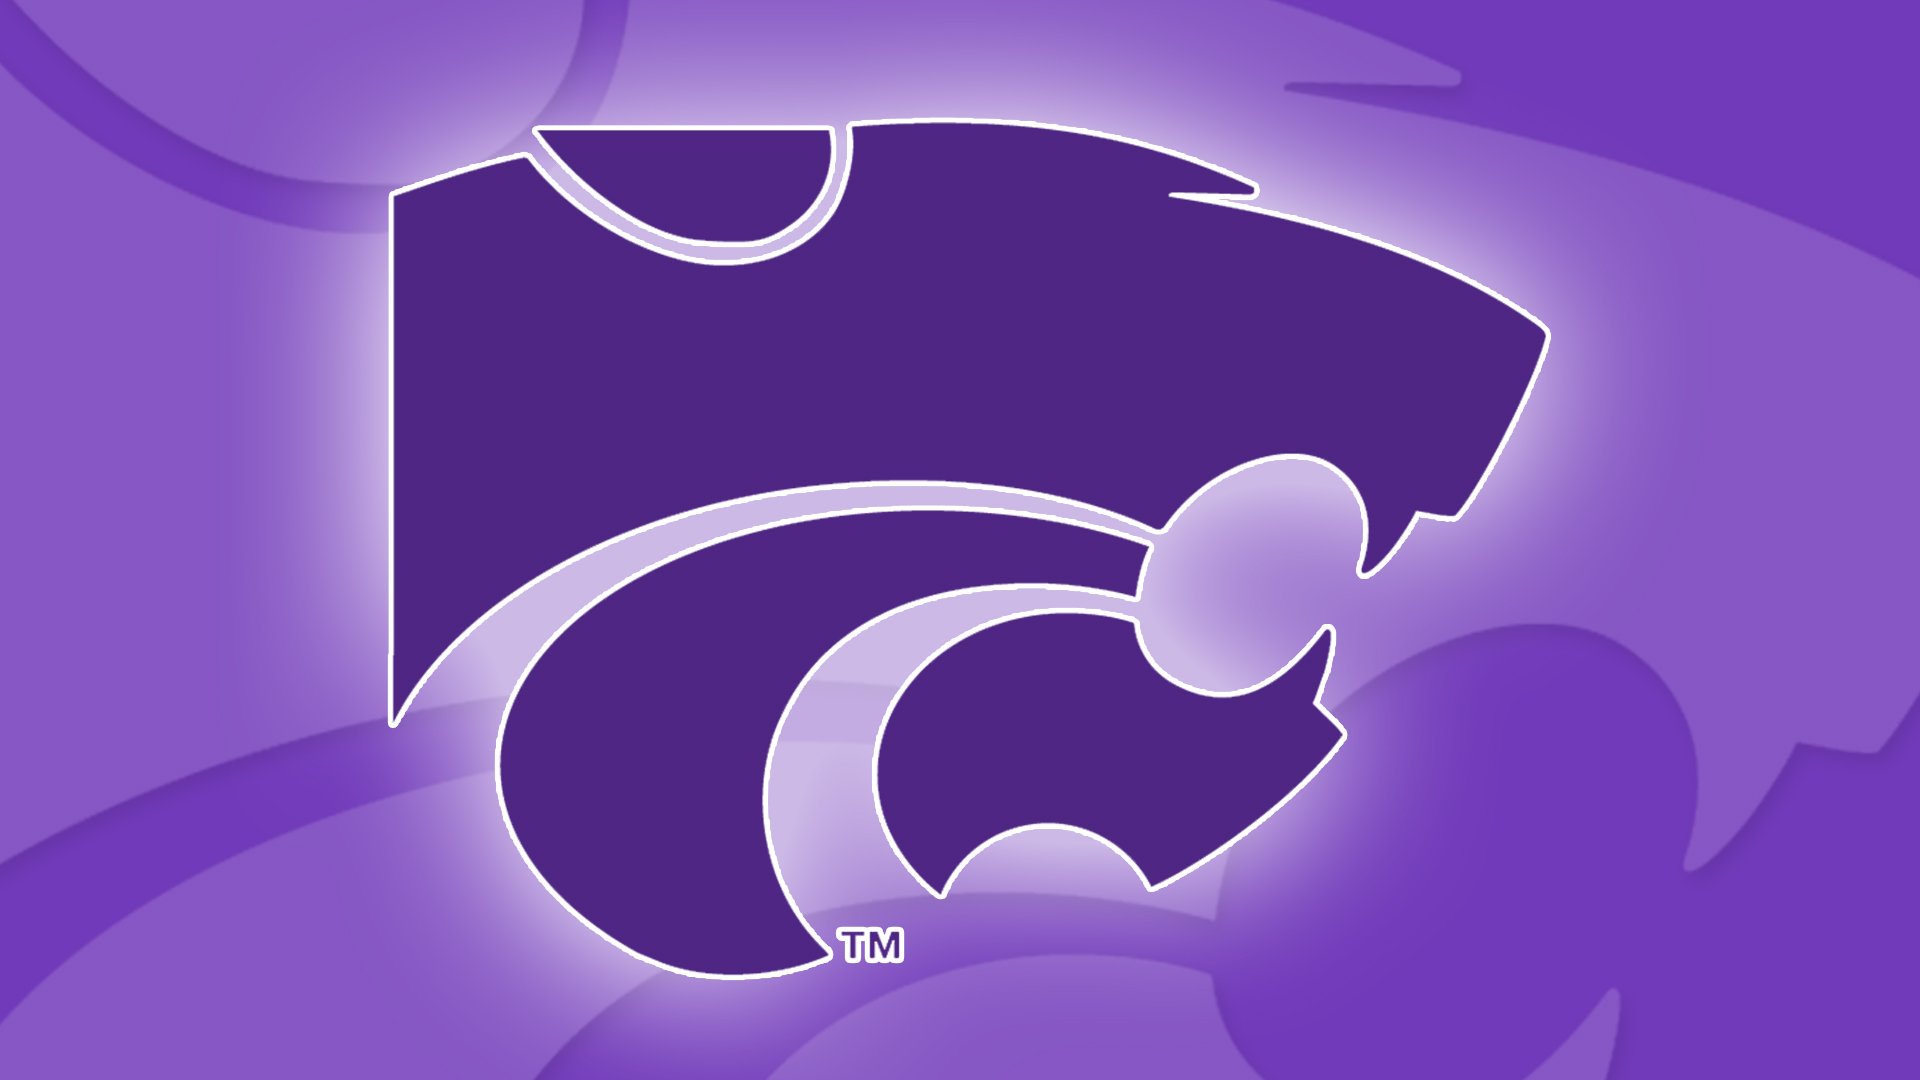 TCU edges K-State, Cats drop to 0-2 in Big 12